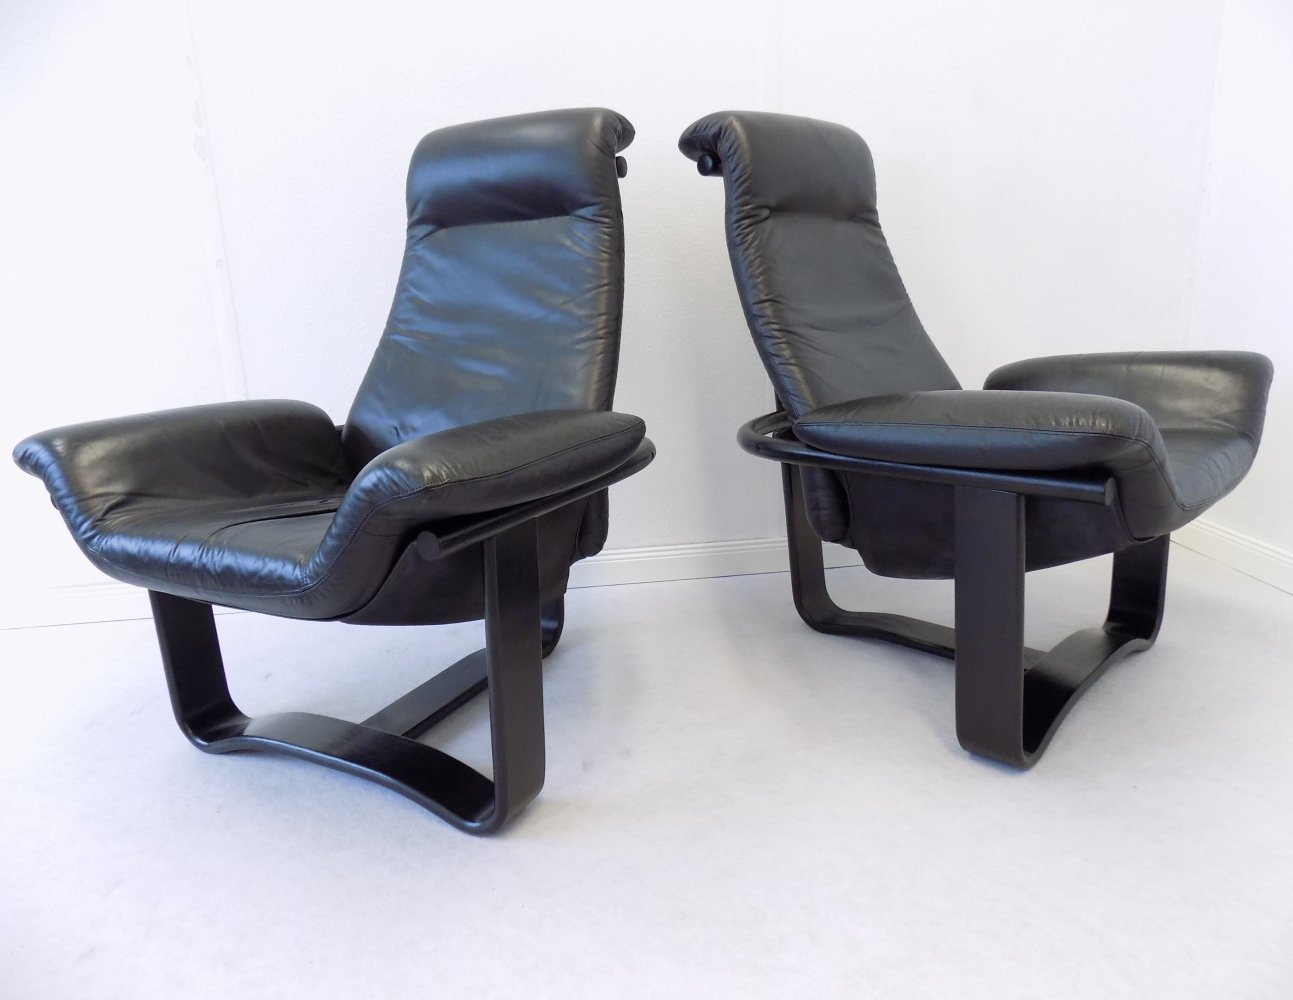 Pair of black Manta chairs by Ingmar Relling for Westnofa